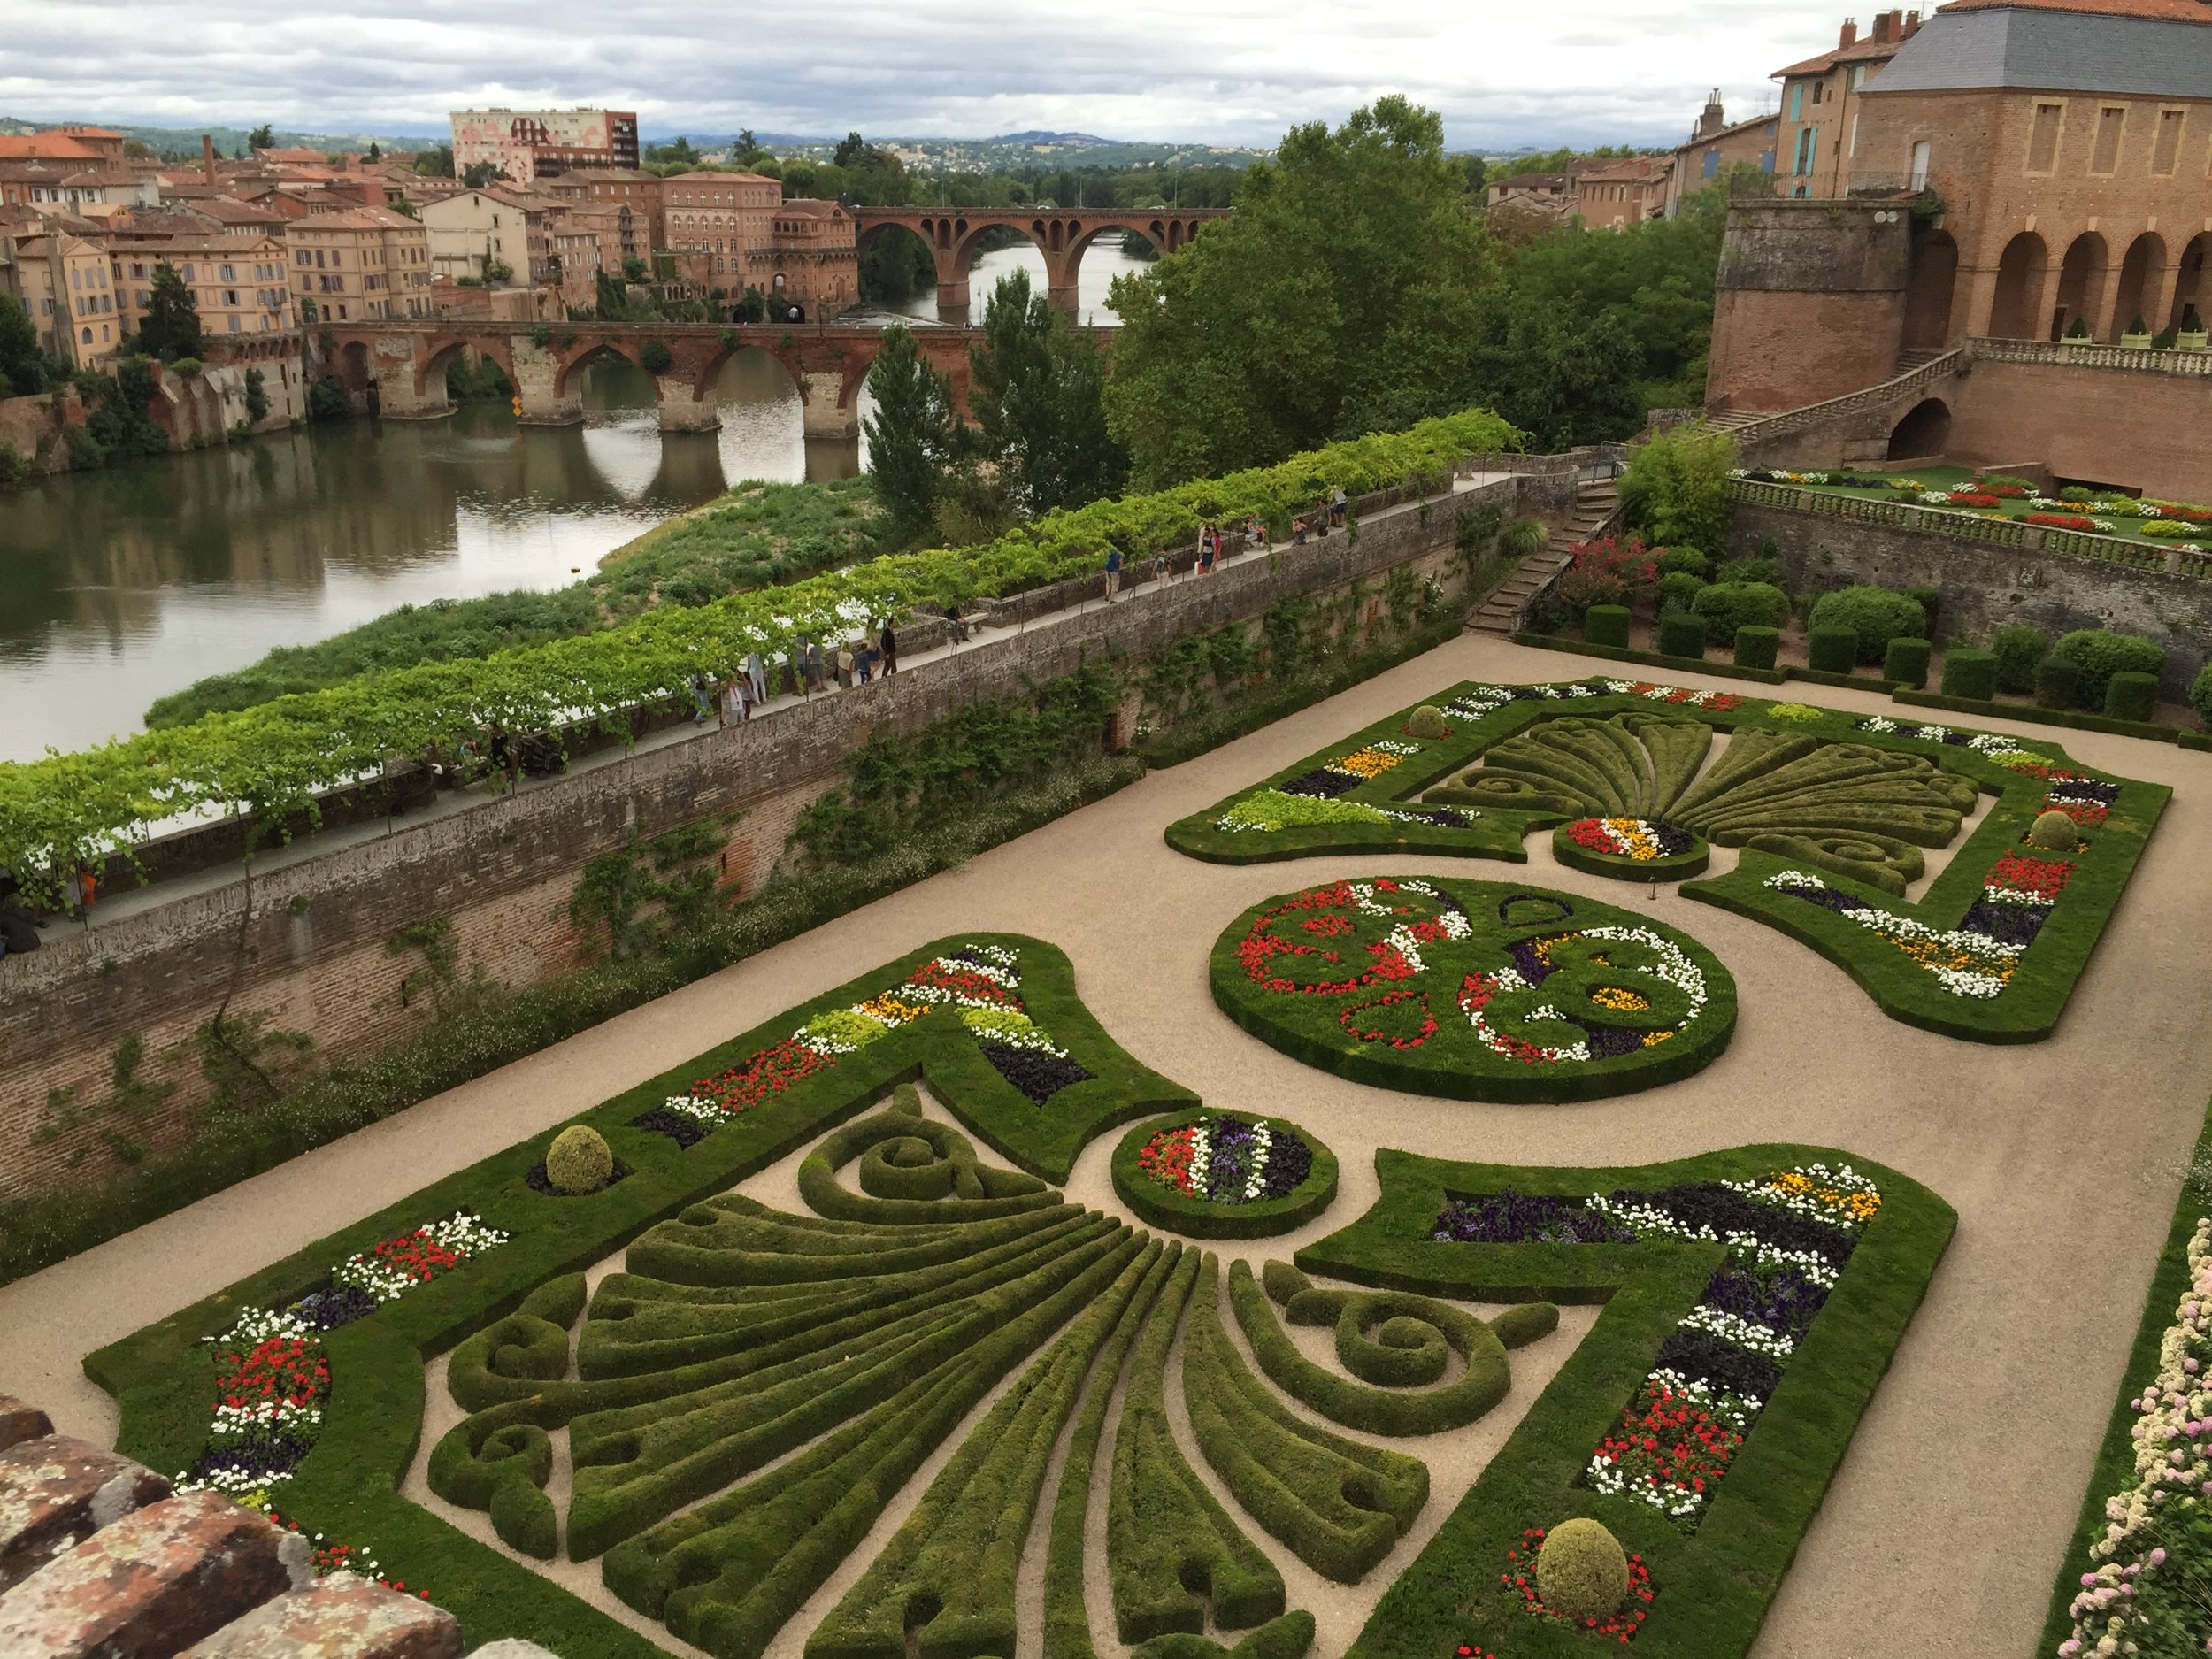 A classical garden is part of Palais de la Berbie which is the home of the Toulouse Lautrec Museum.  It is a UNESCO World Heritage Site in Albi, a 30 minute drive from Ambialet.